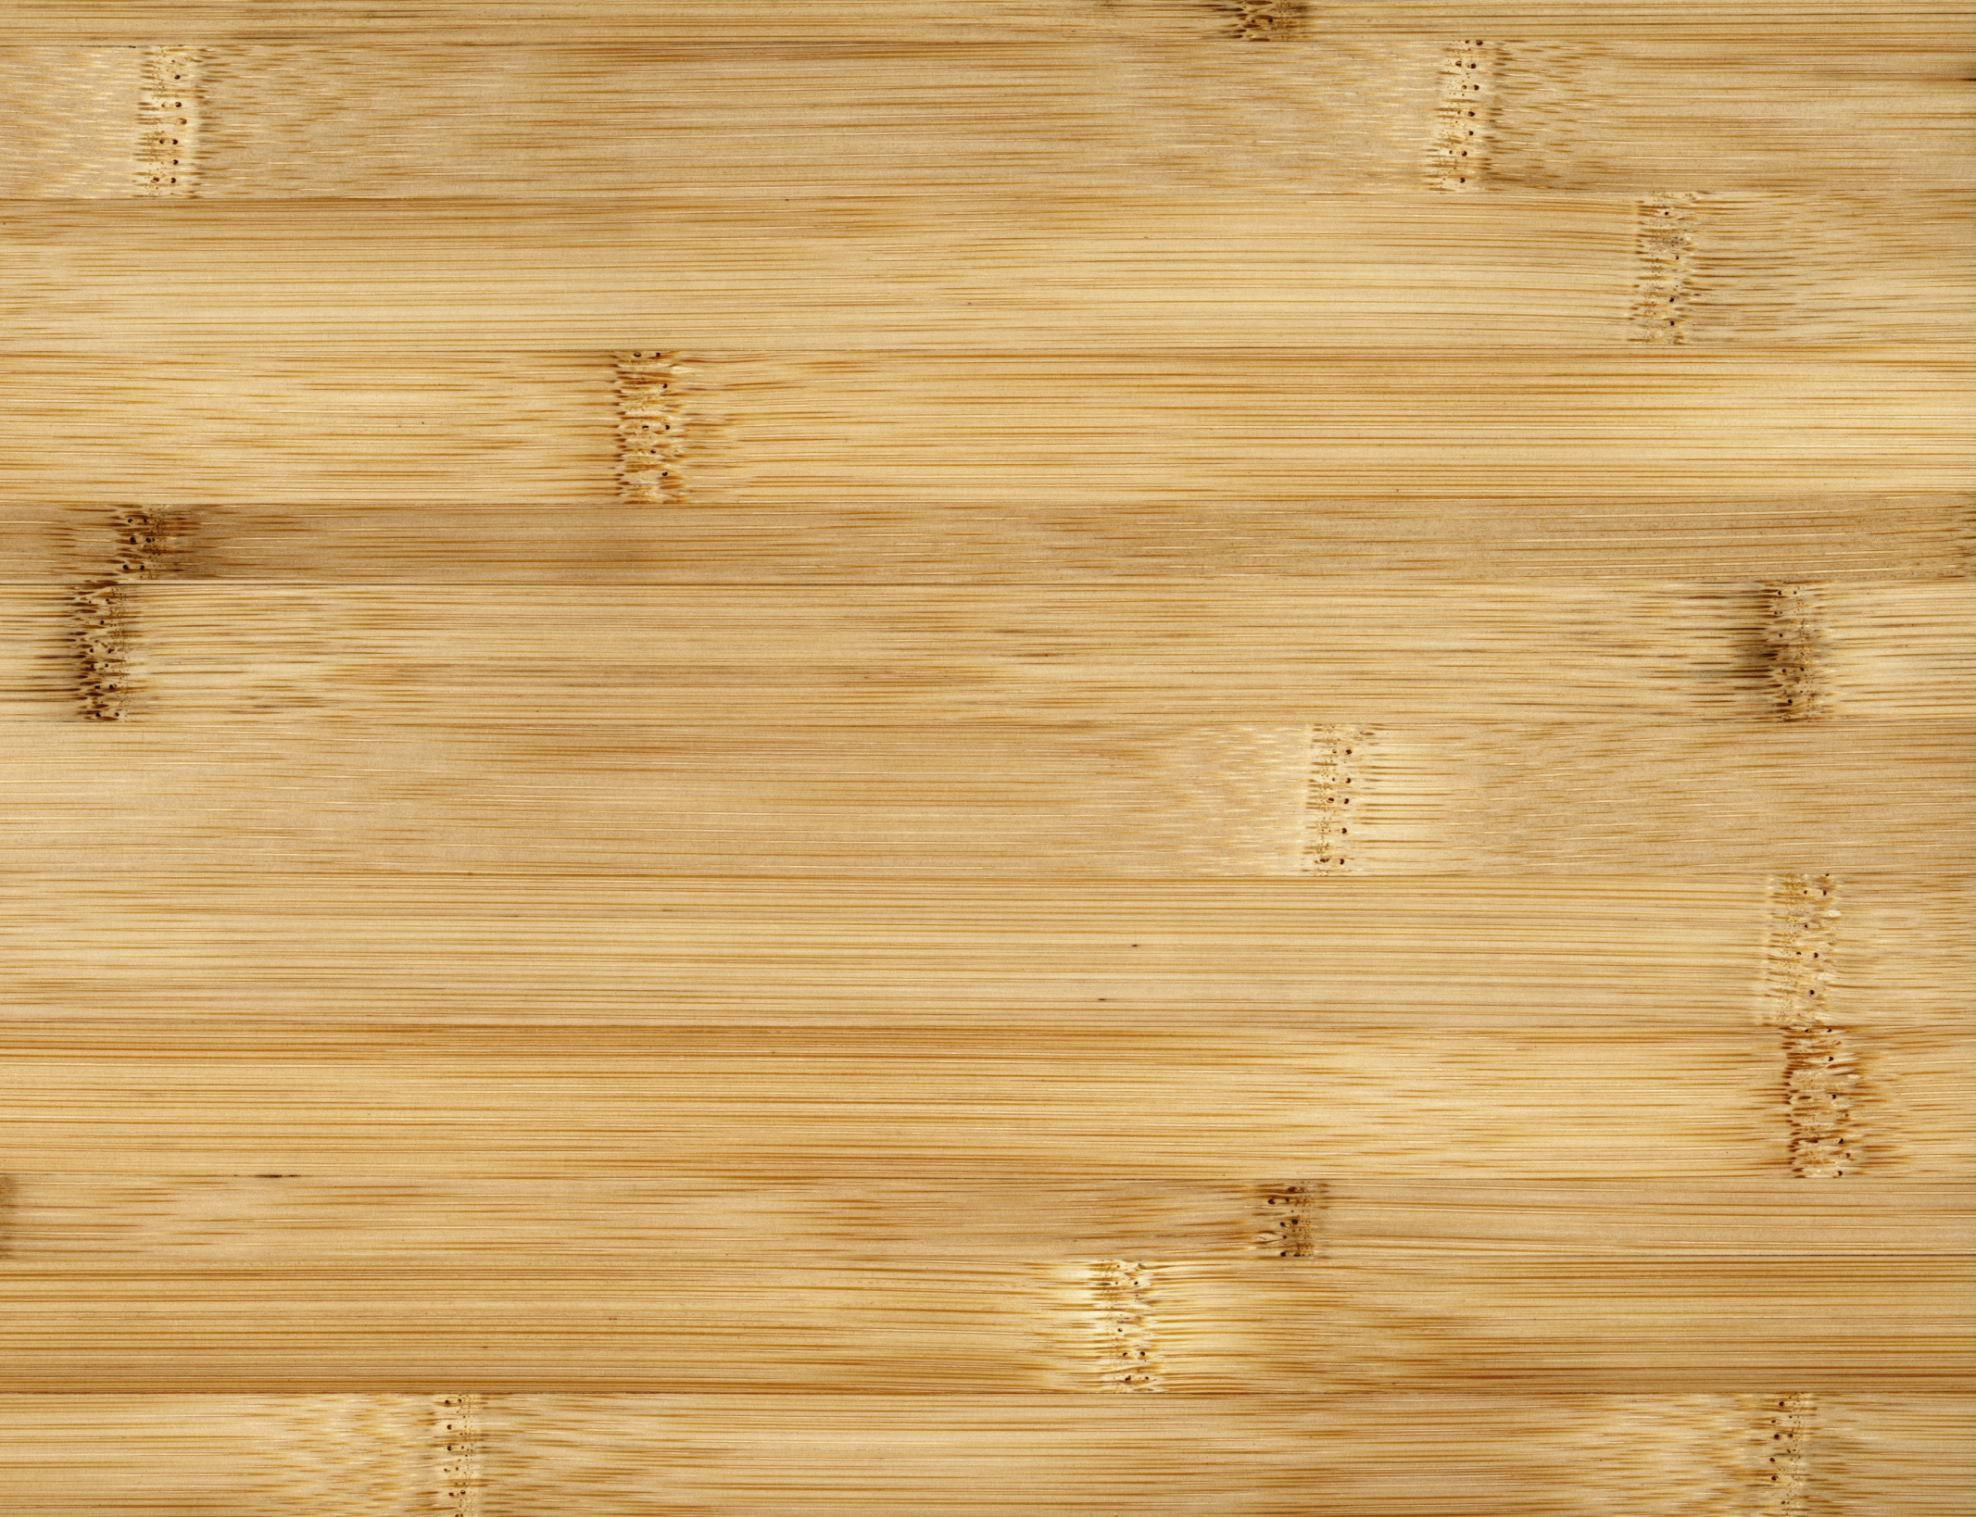 strand bamboo hardwood flooring of how to clean bamboo flooring pertaining to 200266305 001 56a2fd815f9b58b7d0d000cd